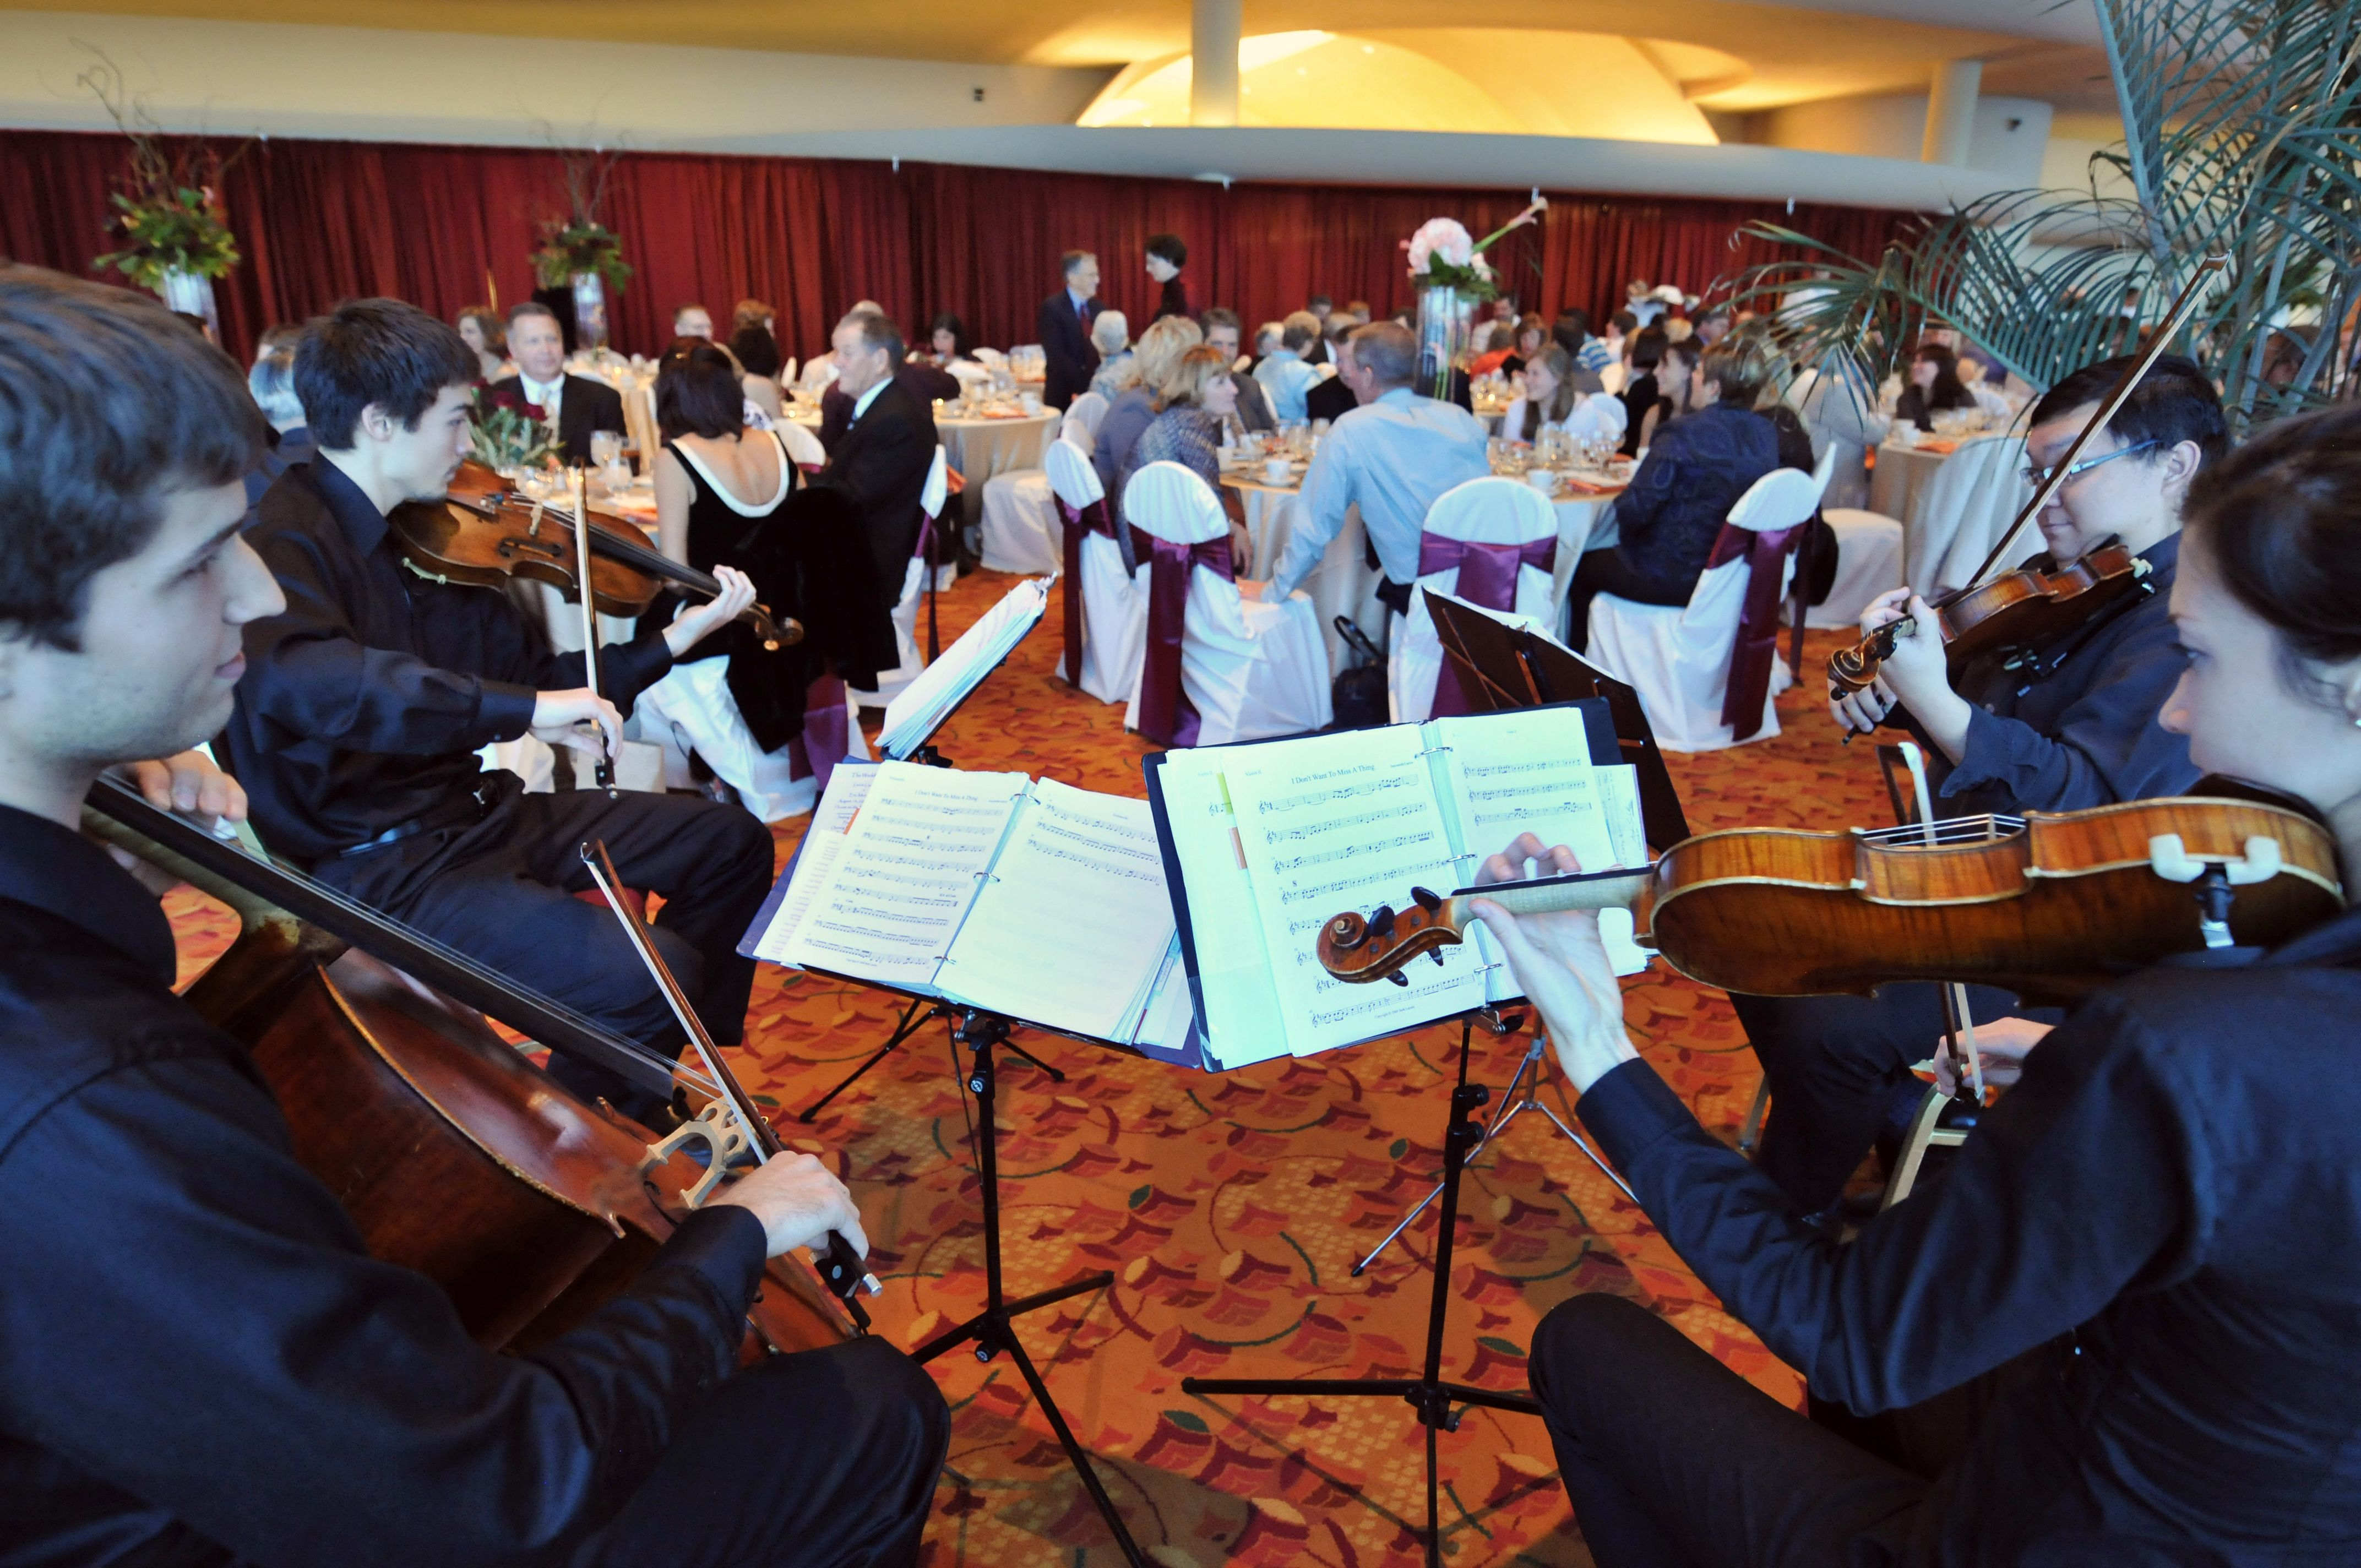 LFQ At The Monona Terrace Performing Wedding Reception Dinner Music